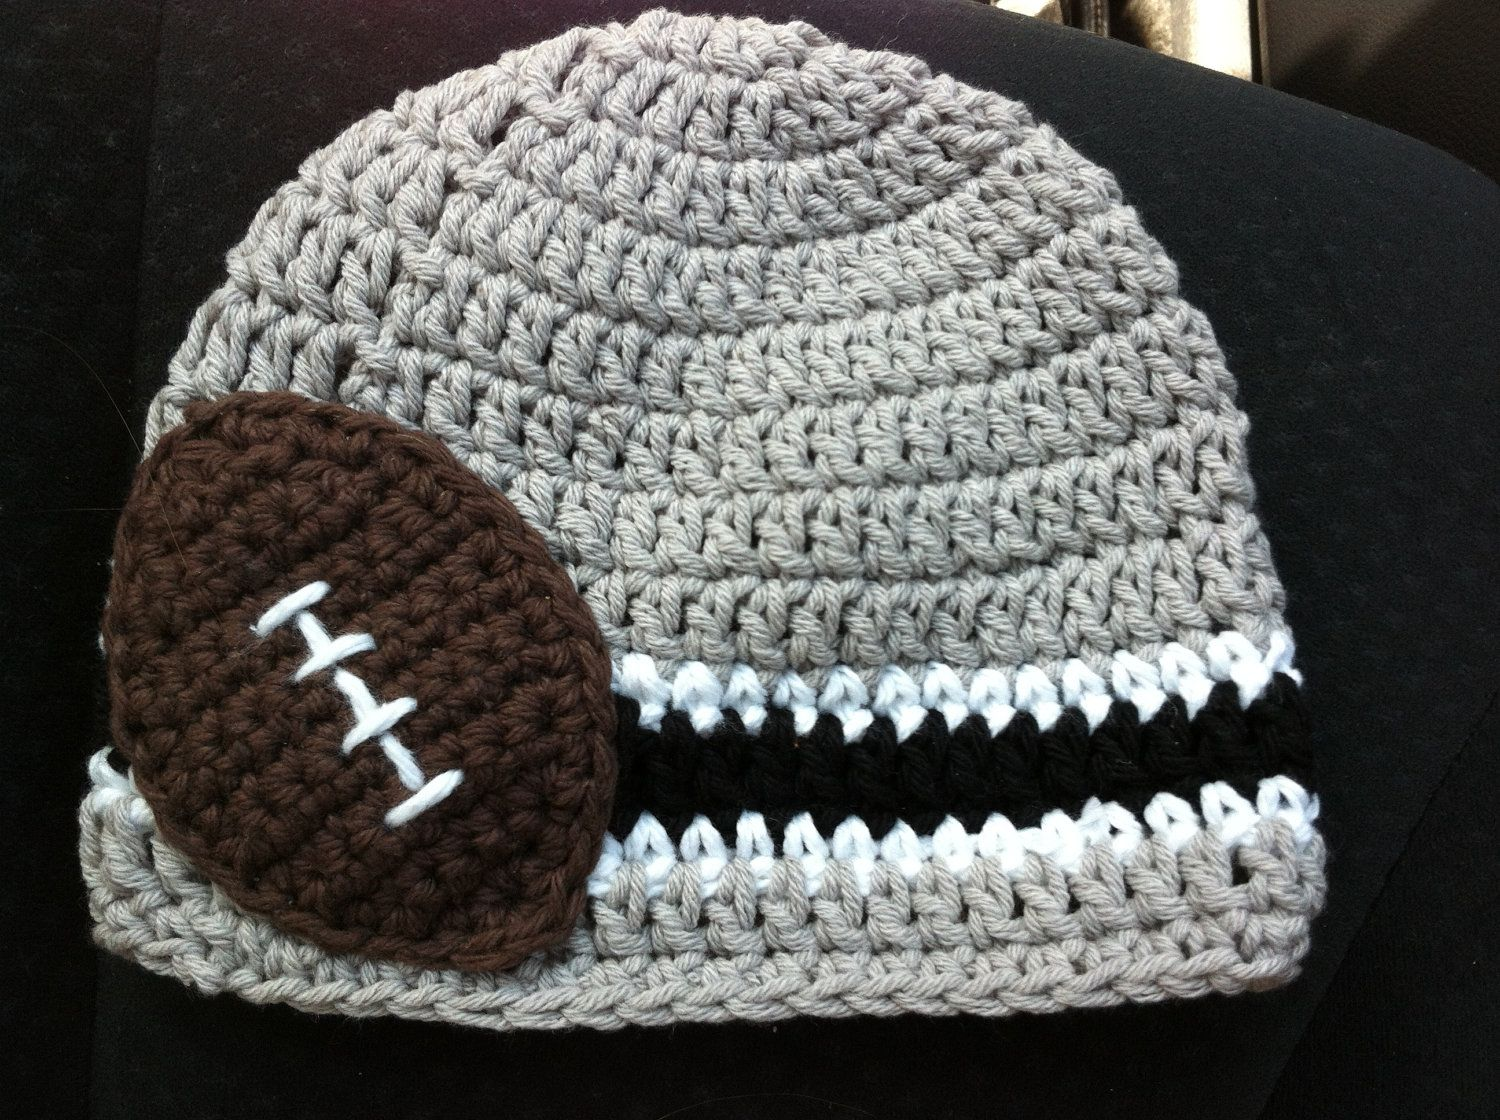 997 best crochet sports theme images on pinterest costumes crocheted cotton hat inspired by oakland raiders nfl colors great photo prop 1799 bankloansurffo Choice Image